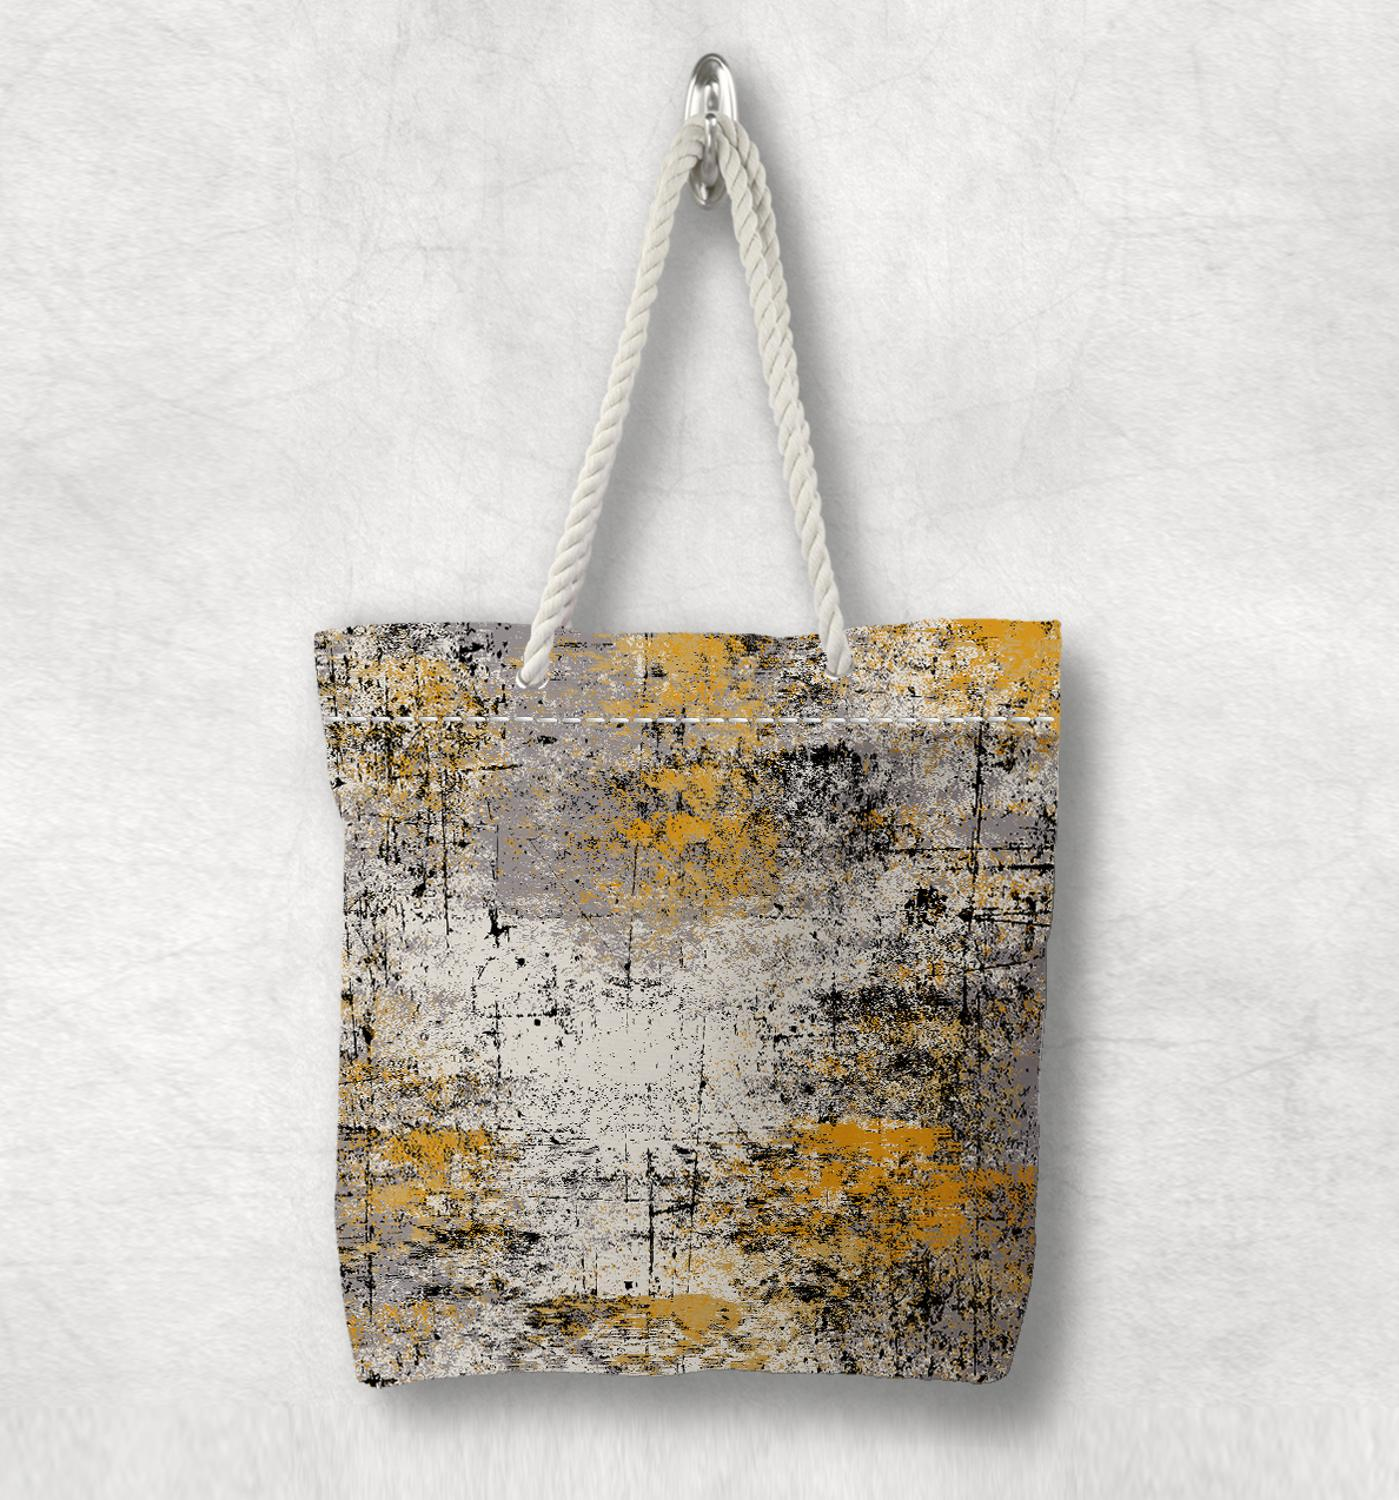 Else Yellow Gray Black Abstract Painting New Fashion White Rope Handle Canvas Bag Cotton Canvas Zippered Tote Bag Shoulder Bag